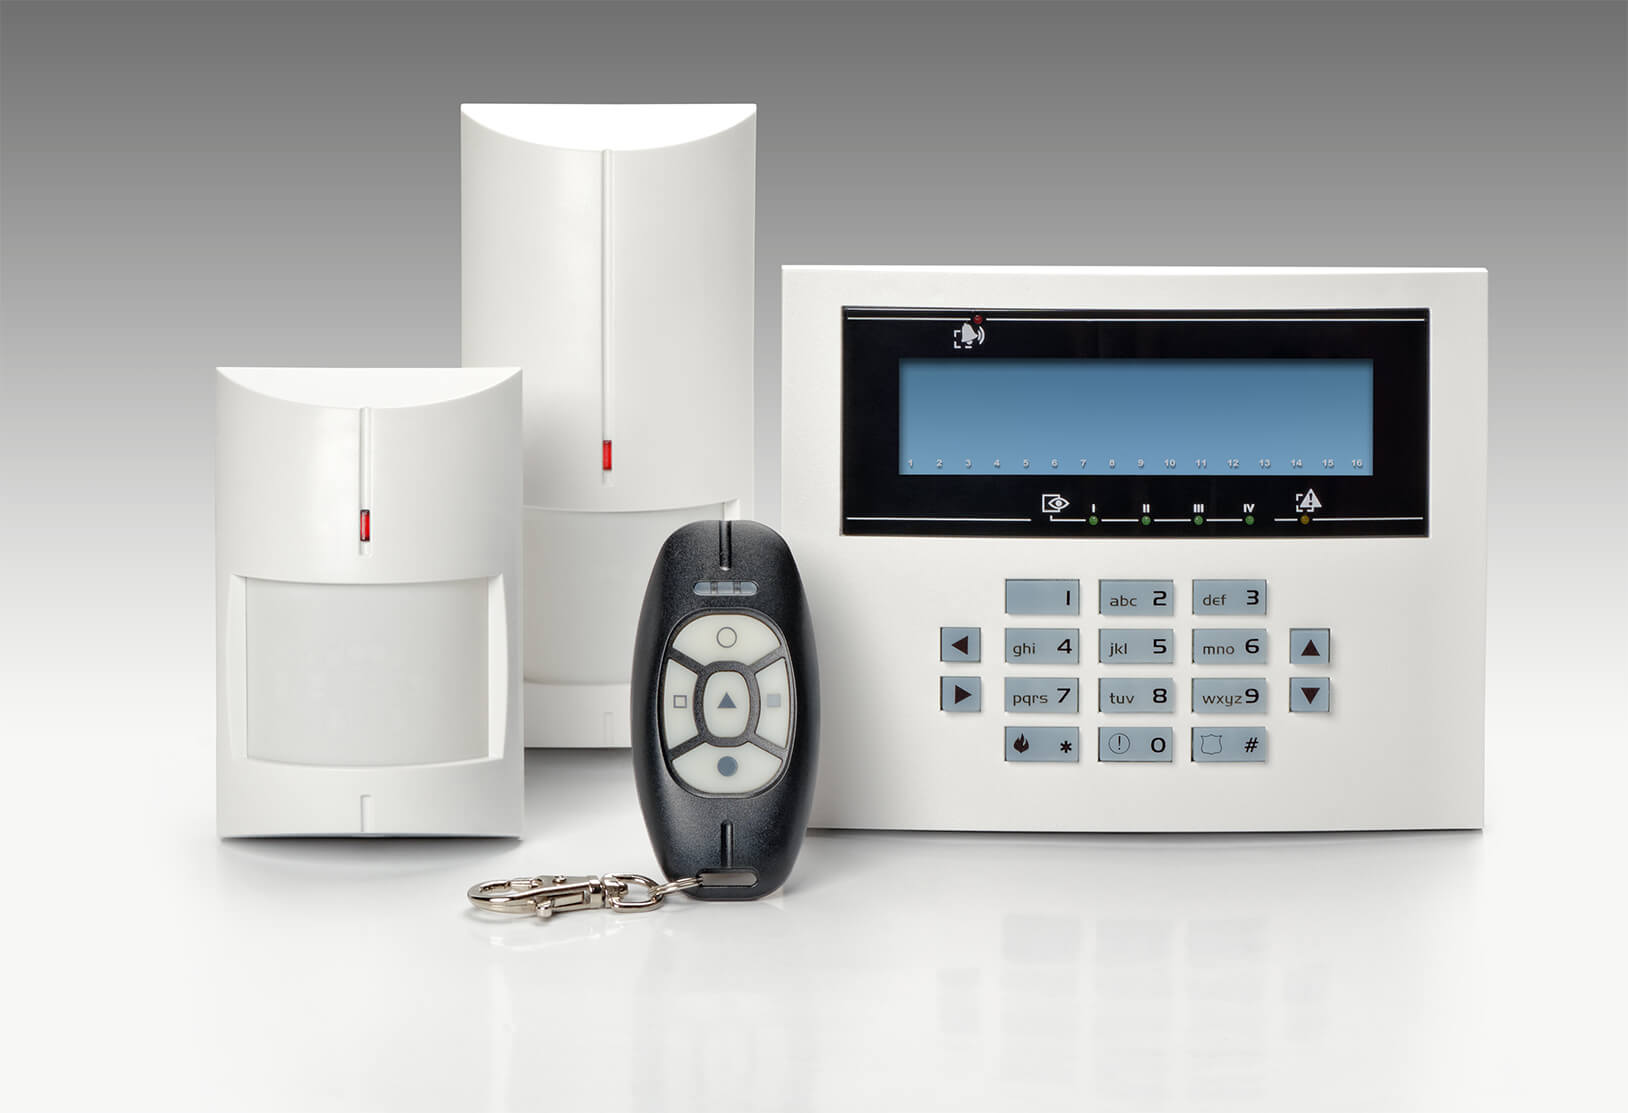 Burglar Alarms Repair in East London - Local East London alarm engineers.Call 02078872244 - See cost/price for burglar alarm repair and book your alarm engineer. No Hidden charges,No Contracts, Book as you need.Engineers on demand.All alarm makes repaired.Same day service ability.